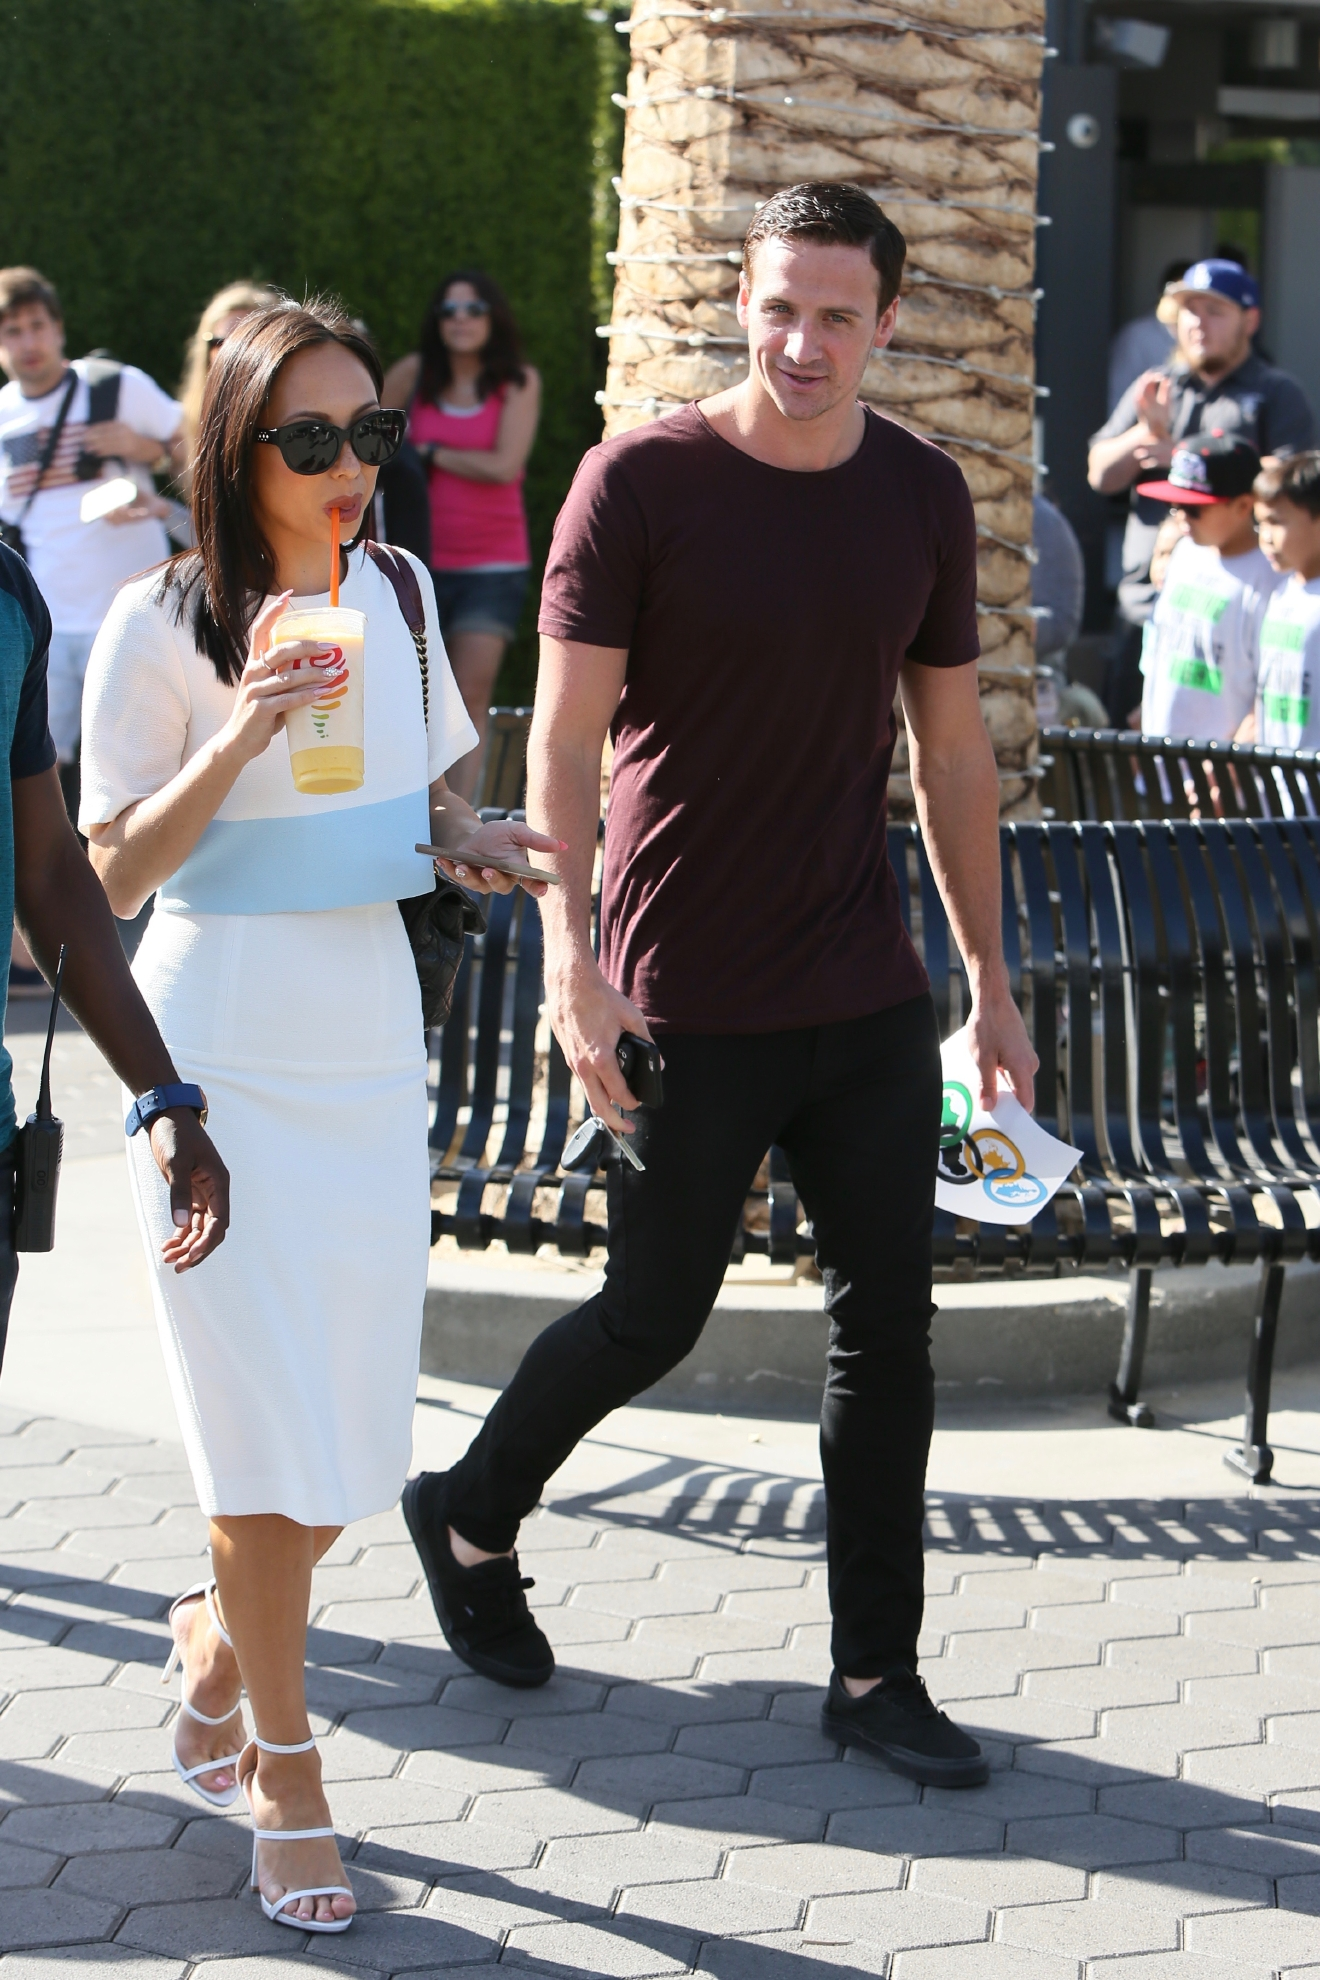 Ryan Lochte and Cheryl Burke seen at Universal studios where they were interviewed by Mario Lopez for television show Extra  Featuring: Cheryl Burke, Ryan Lochte Where: Los Angeles, California, United States When: 23 Sep 2016 Credit: Michael Wright/WENN.com